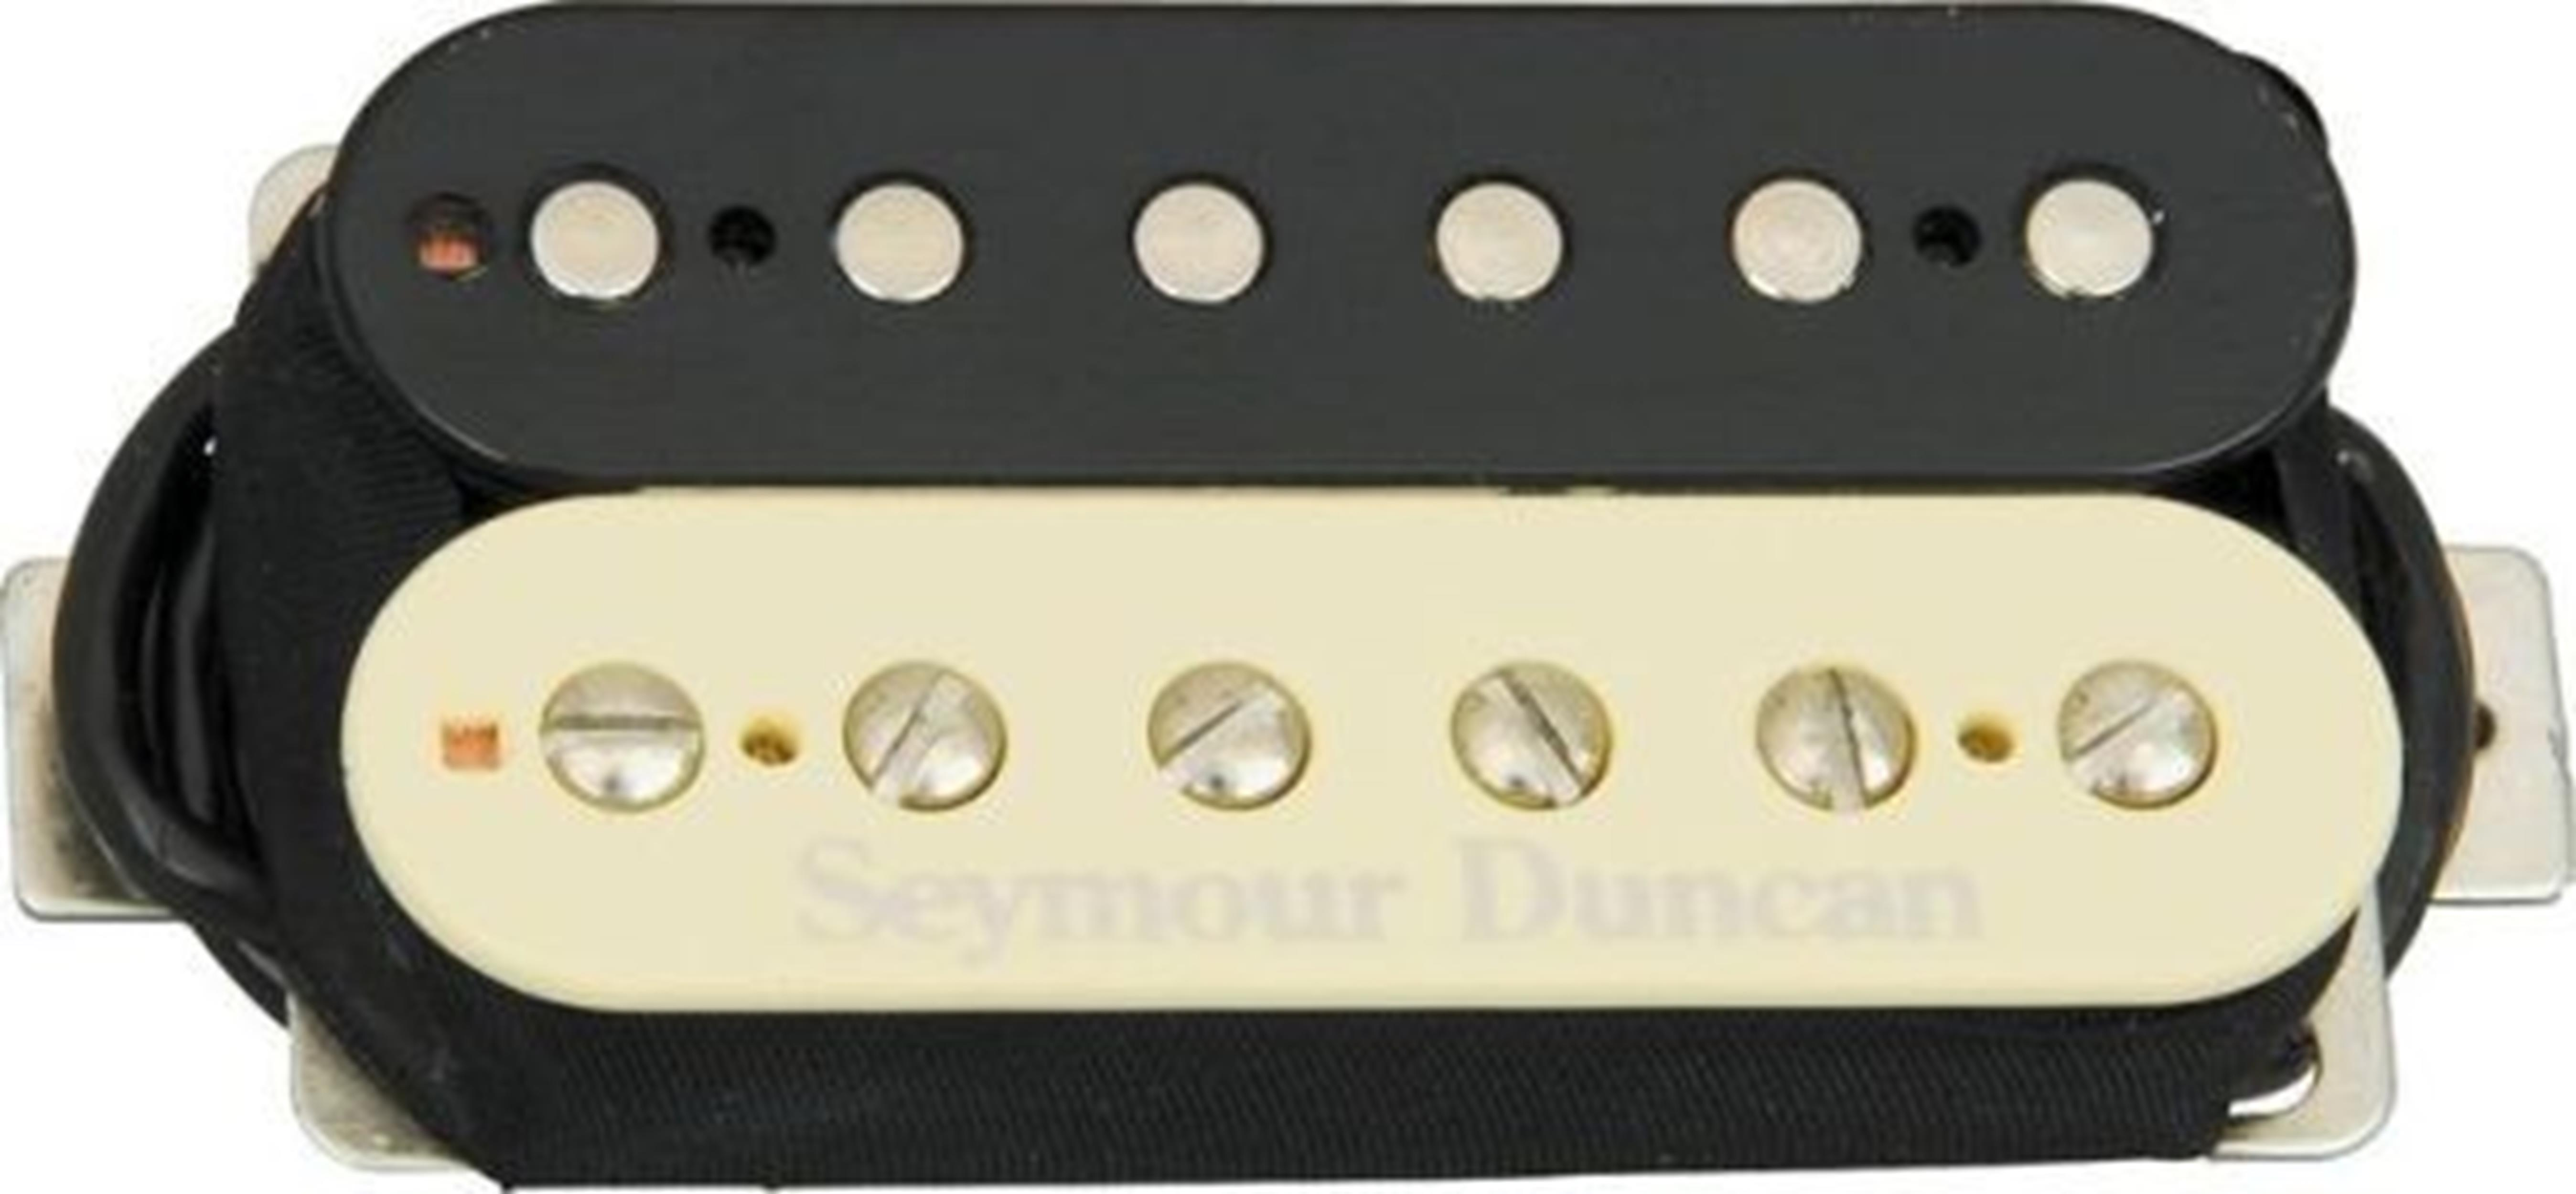 SEYMOUR-DUNCAN TB 5 B CUSTOM TREMBUCKER REV ZEBRA